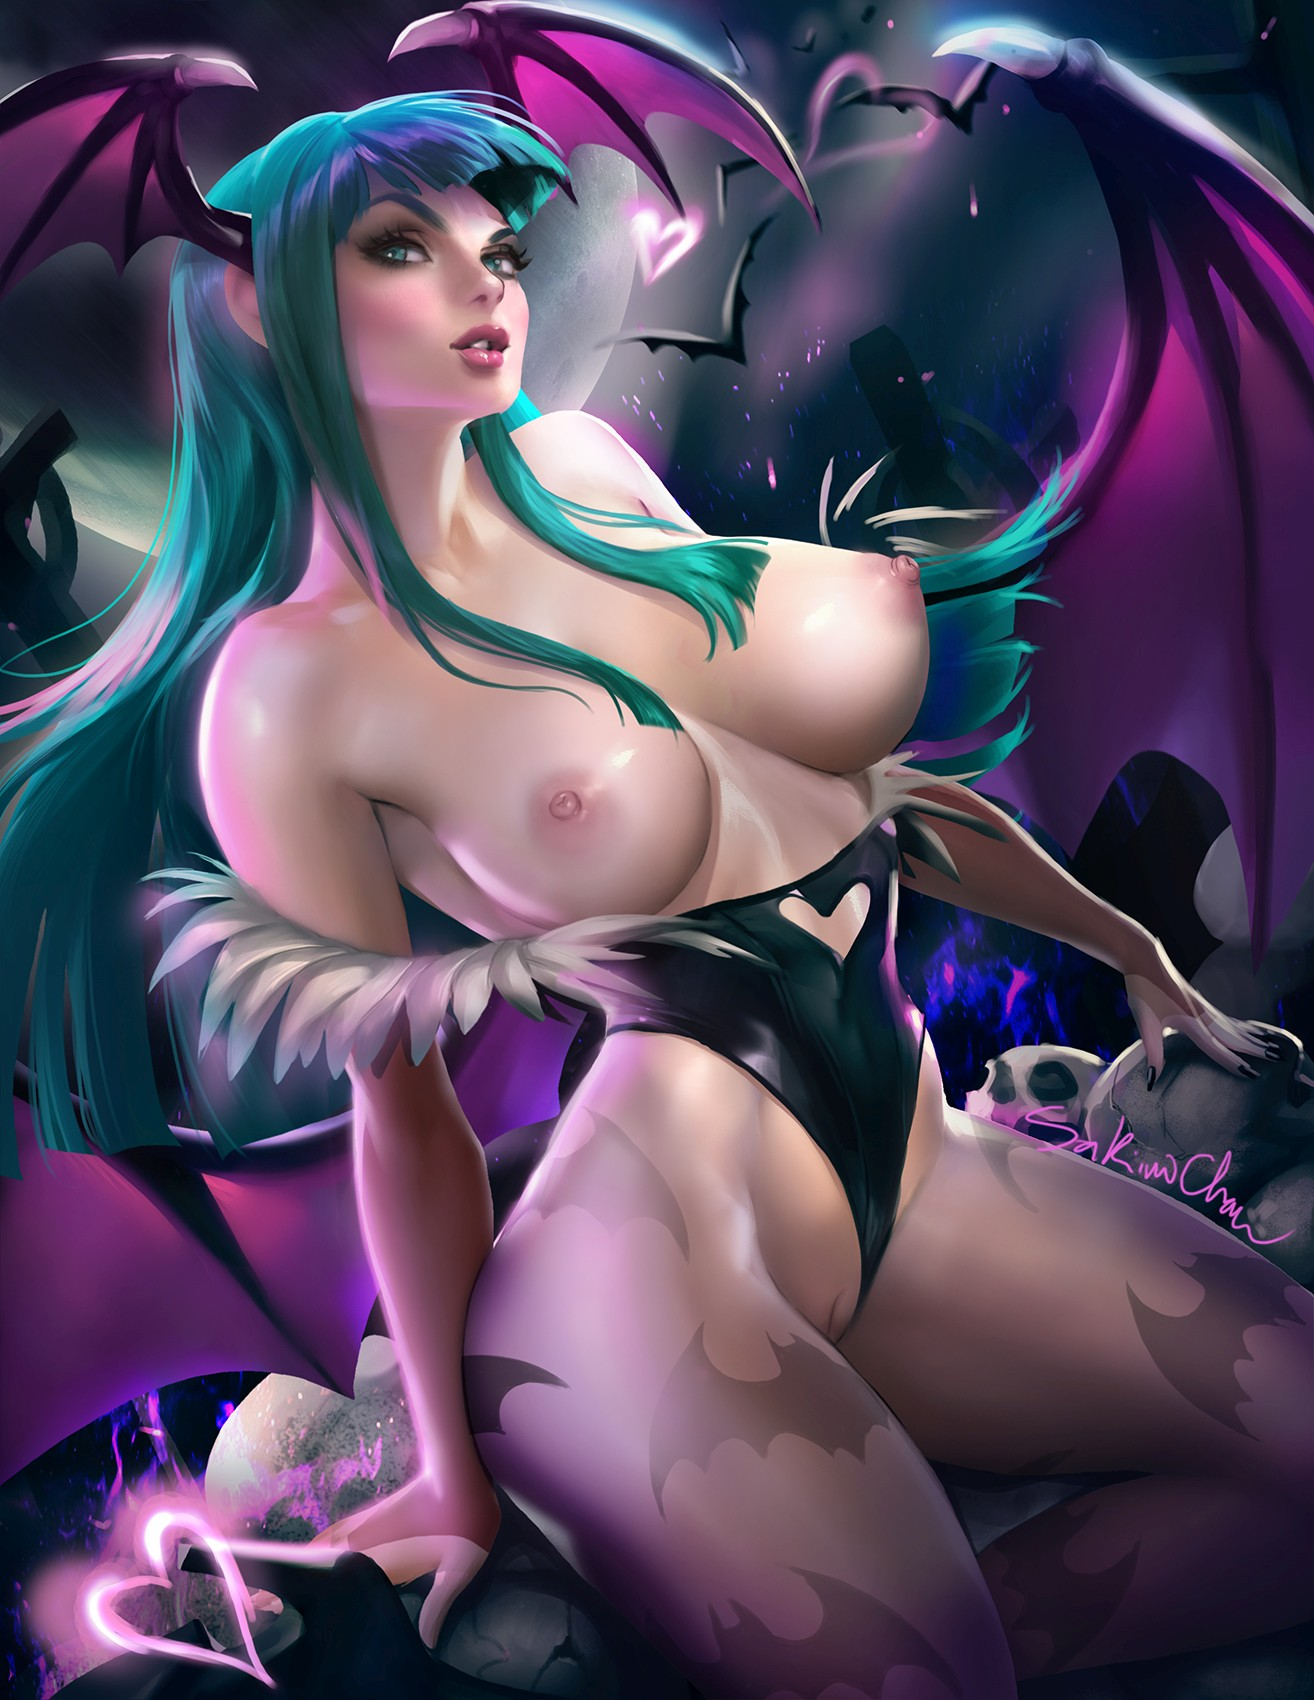 Thirty Hentai Pictures Of Morrigan Aensland From Darkstalkers